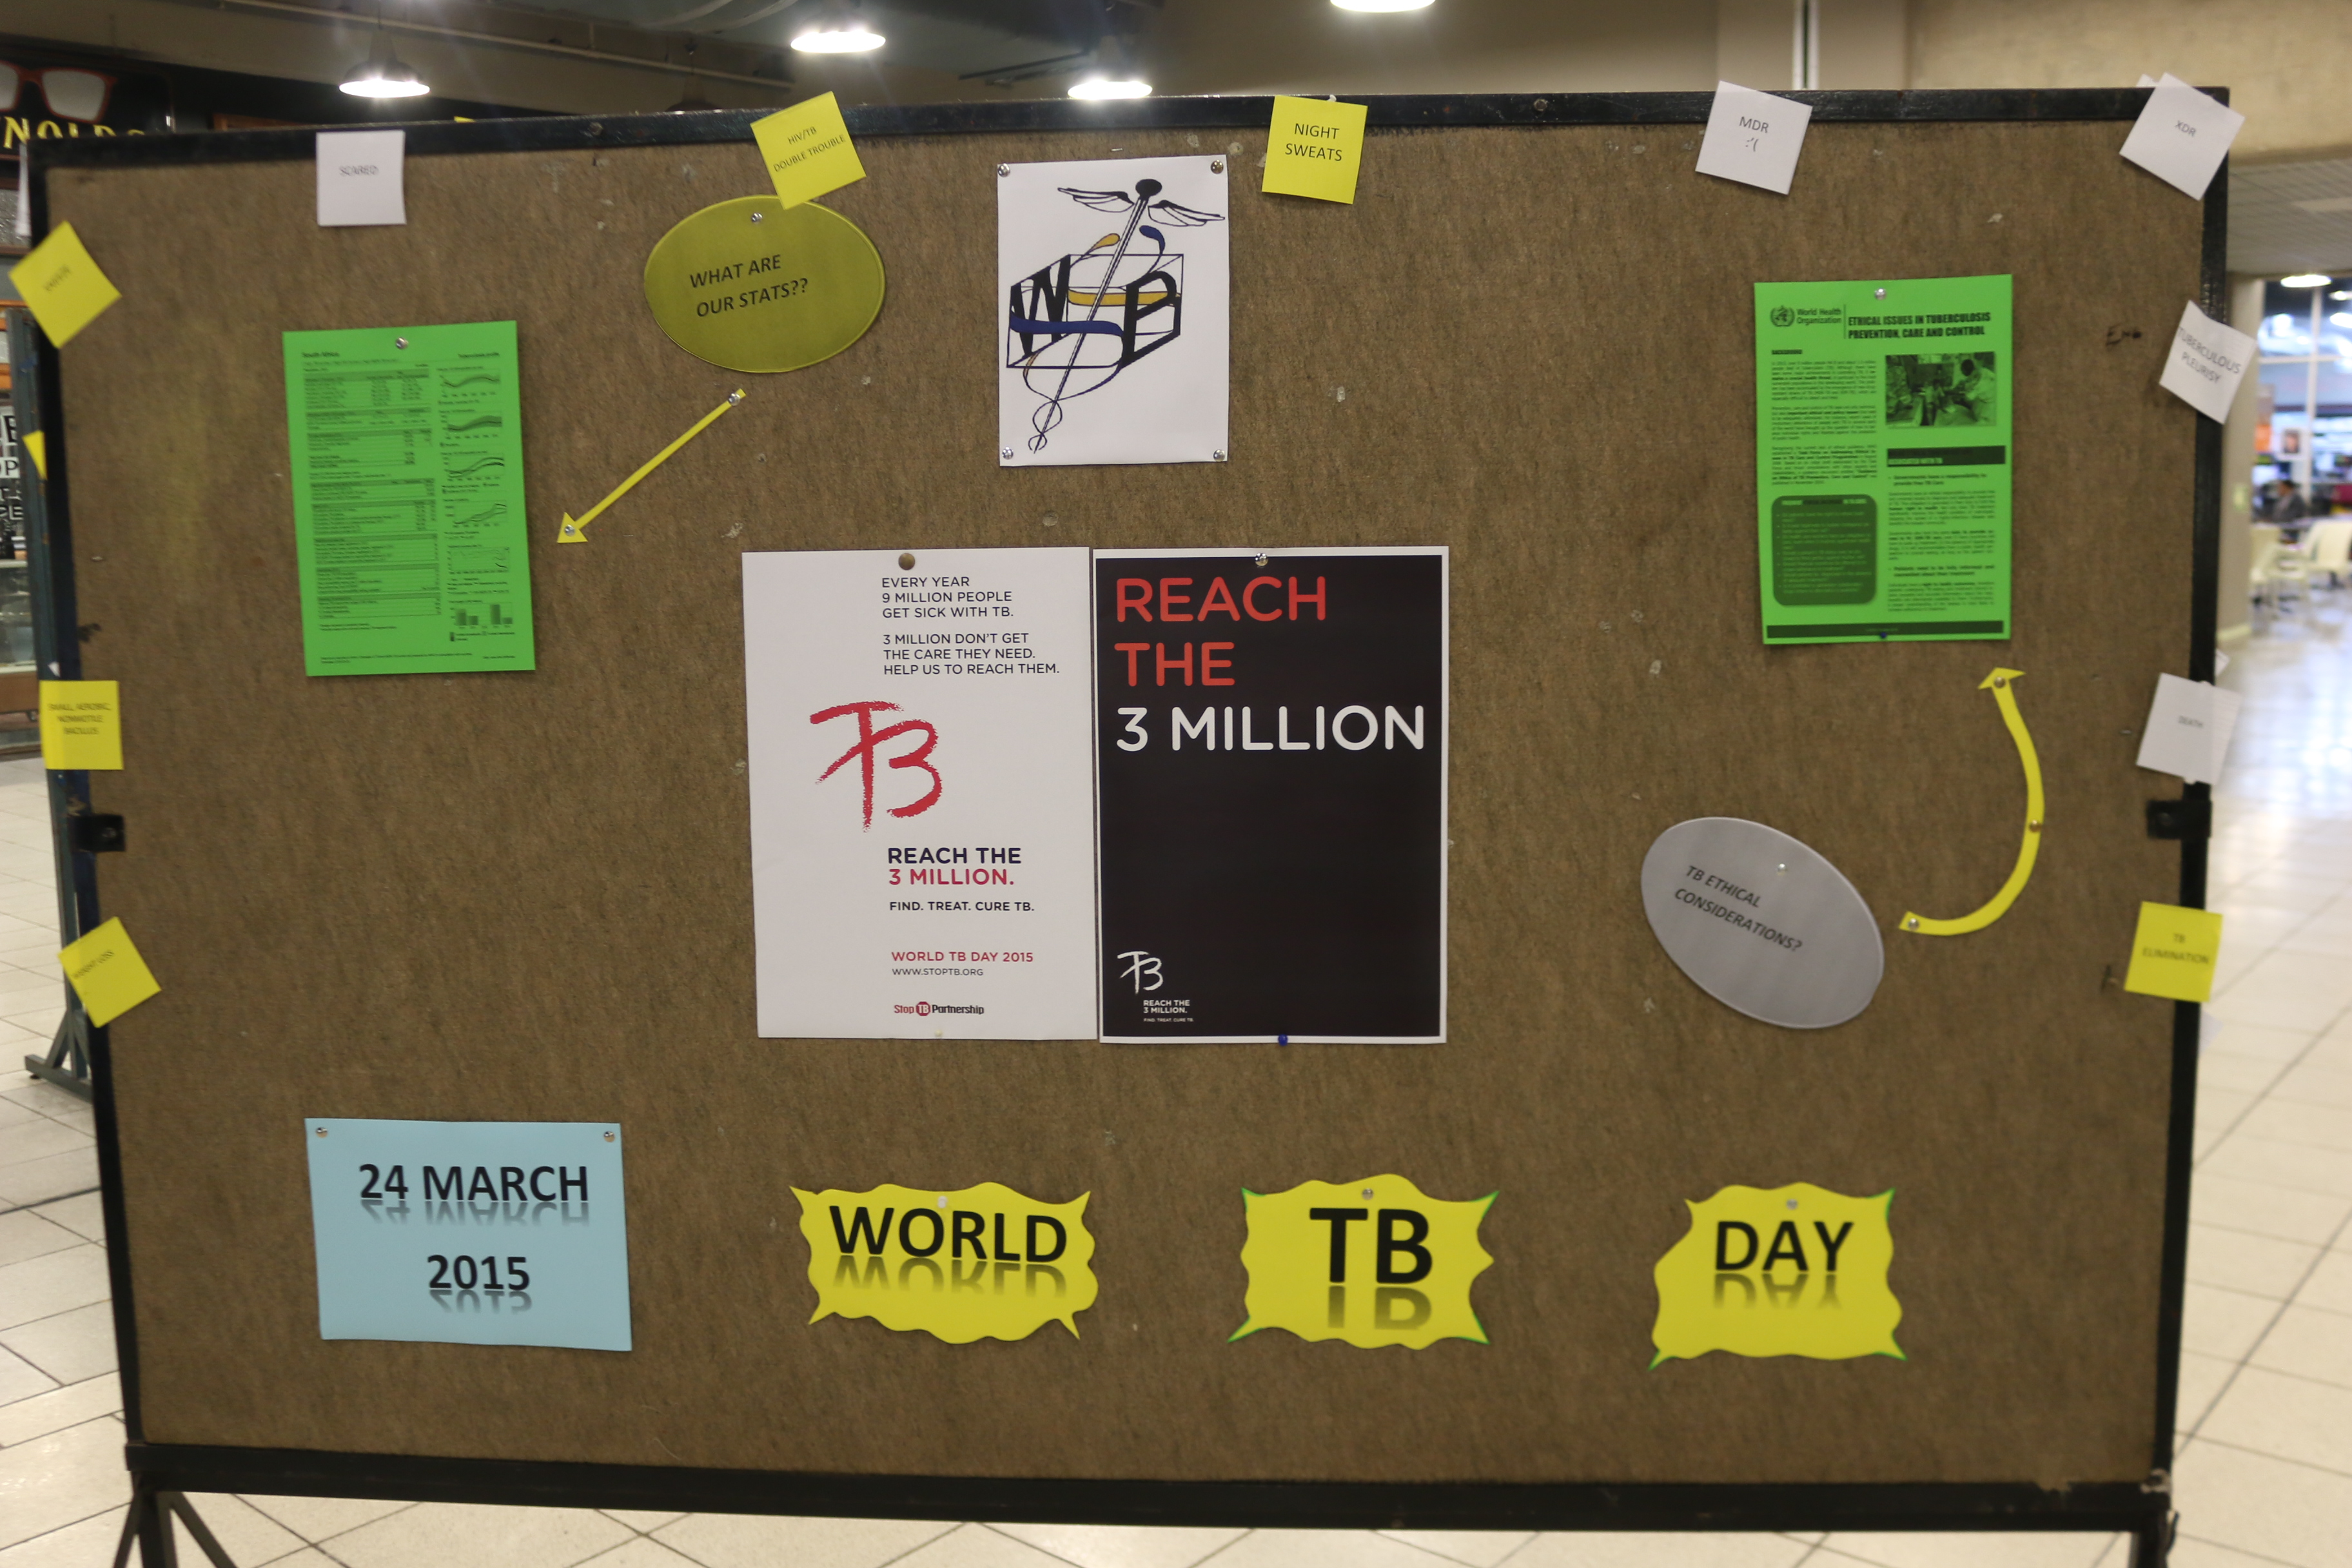 Wits awareness on World TB day